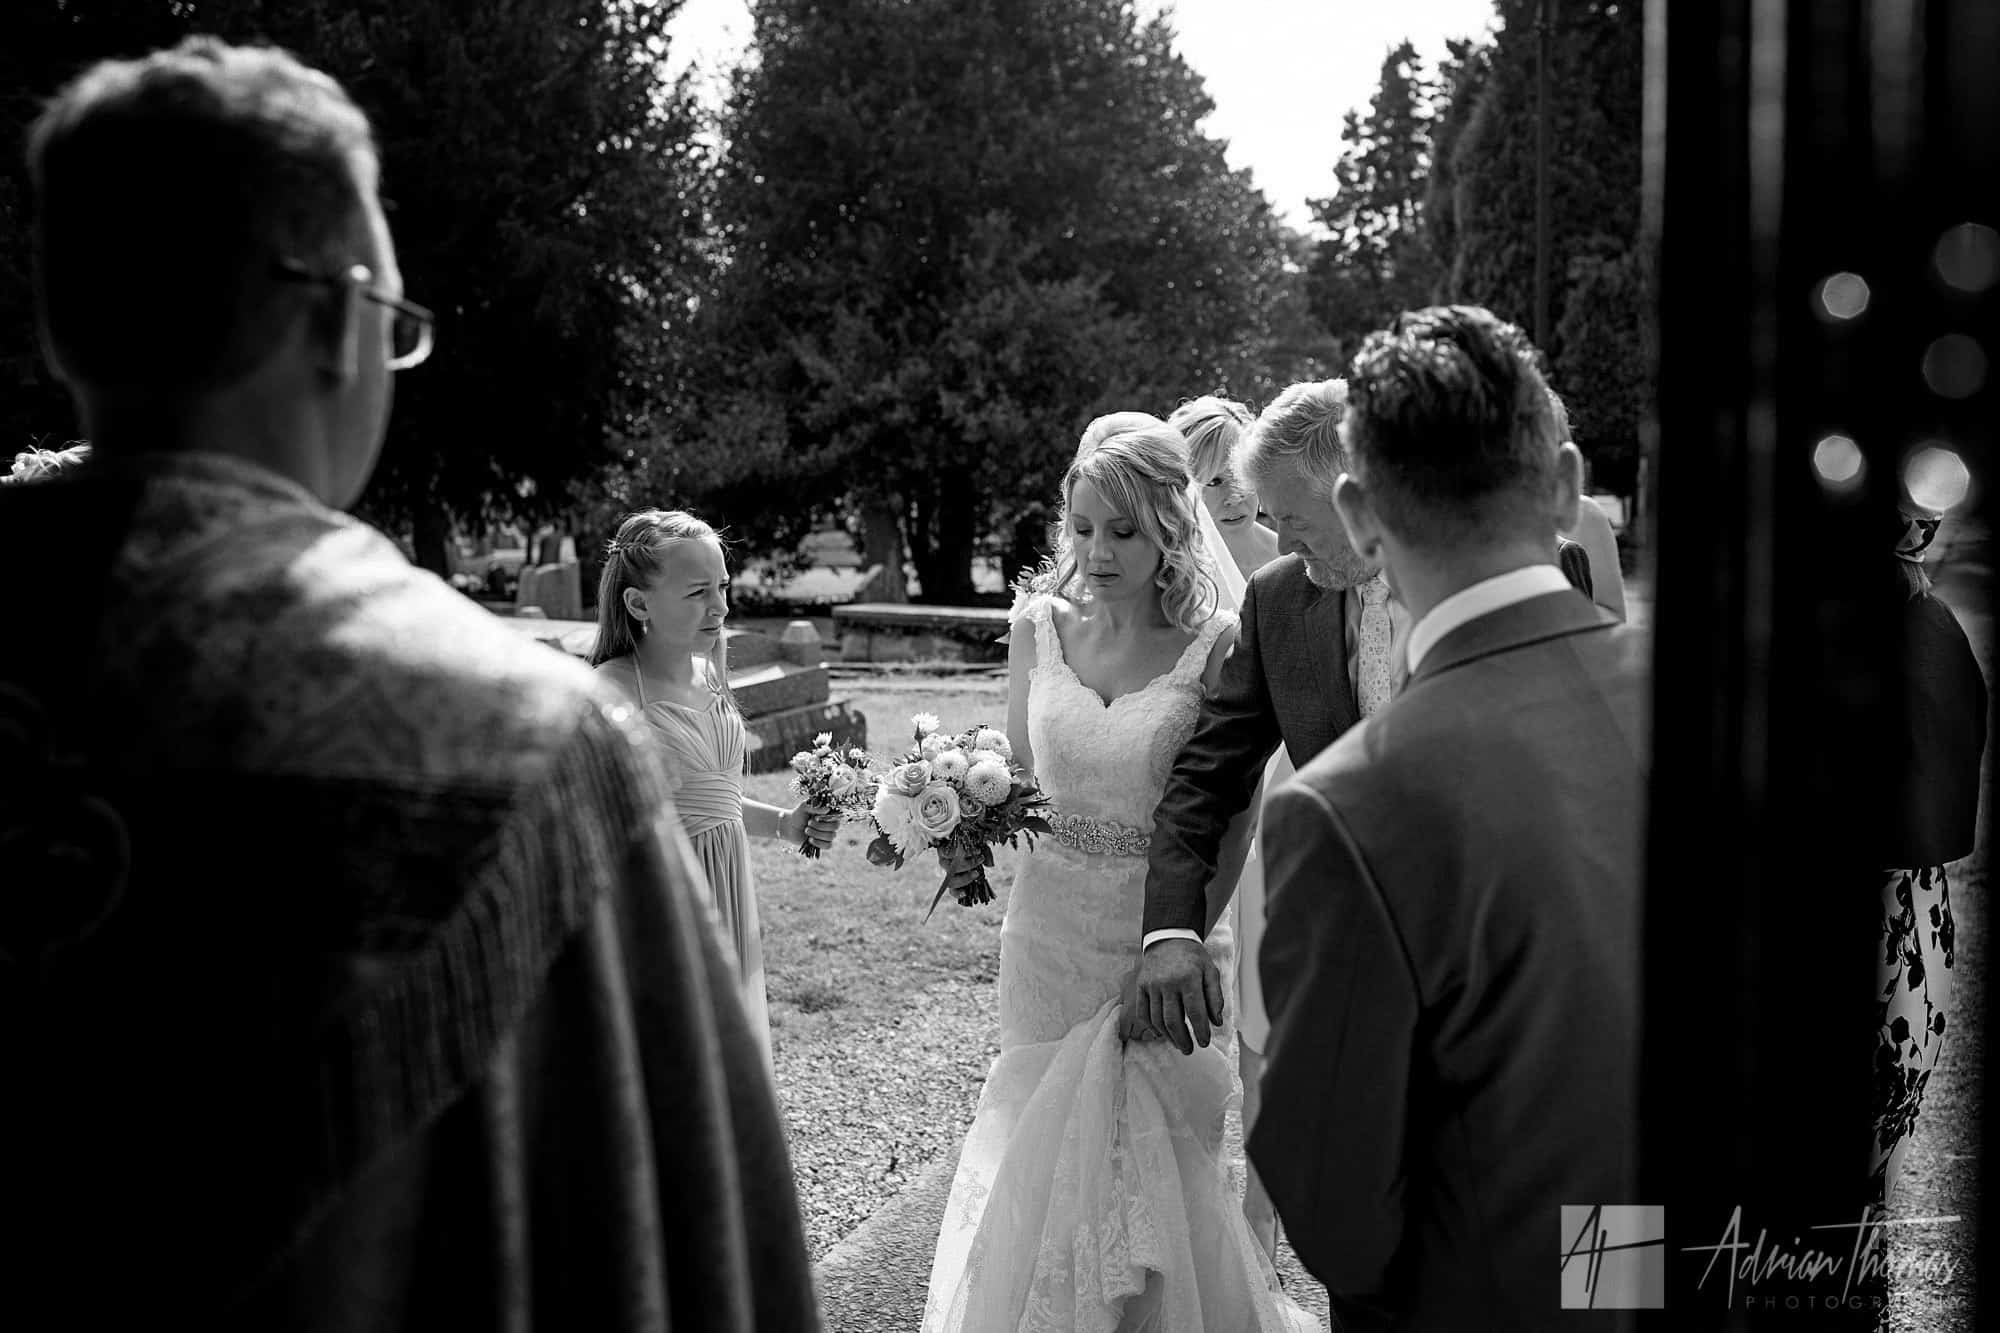 Brides dad offers his guiding arm